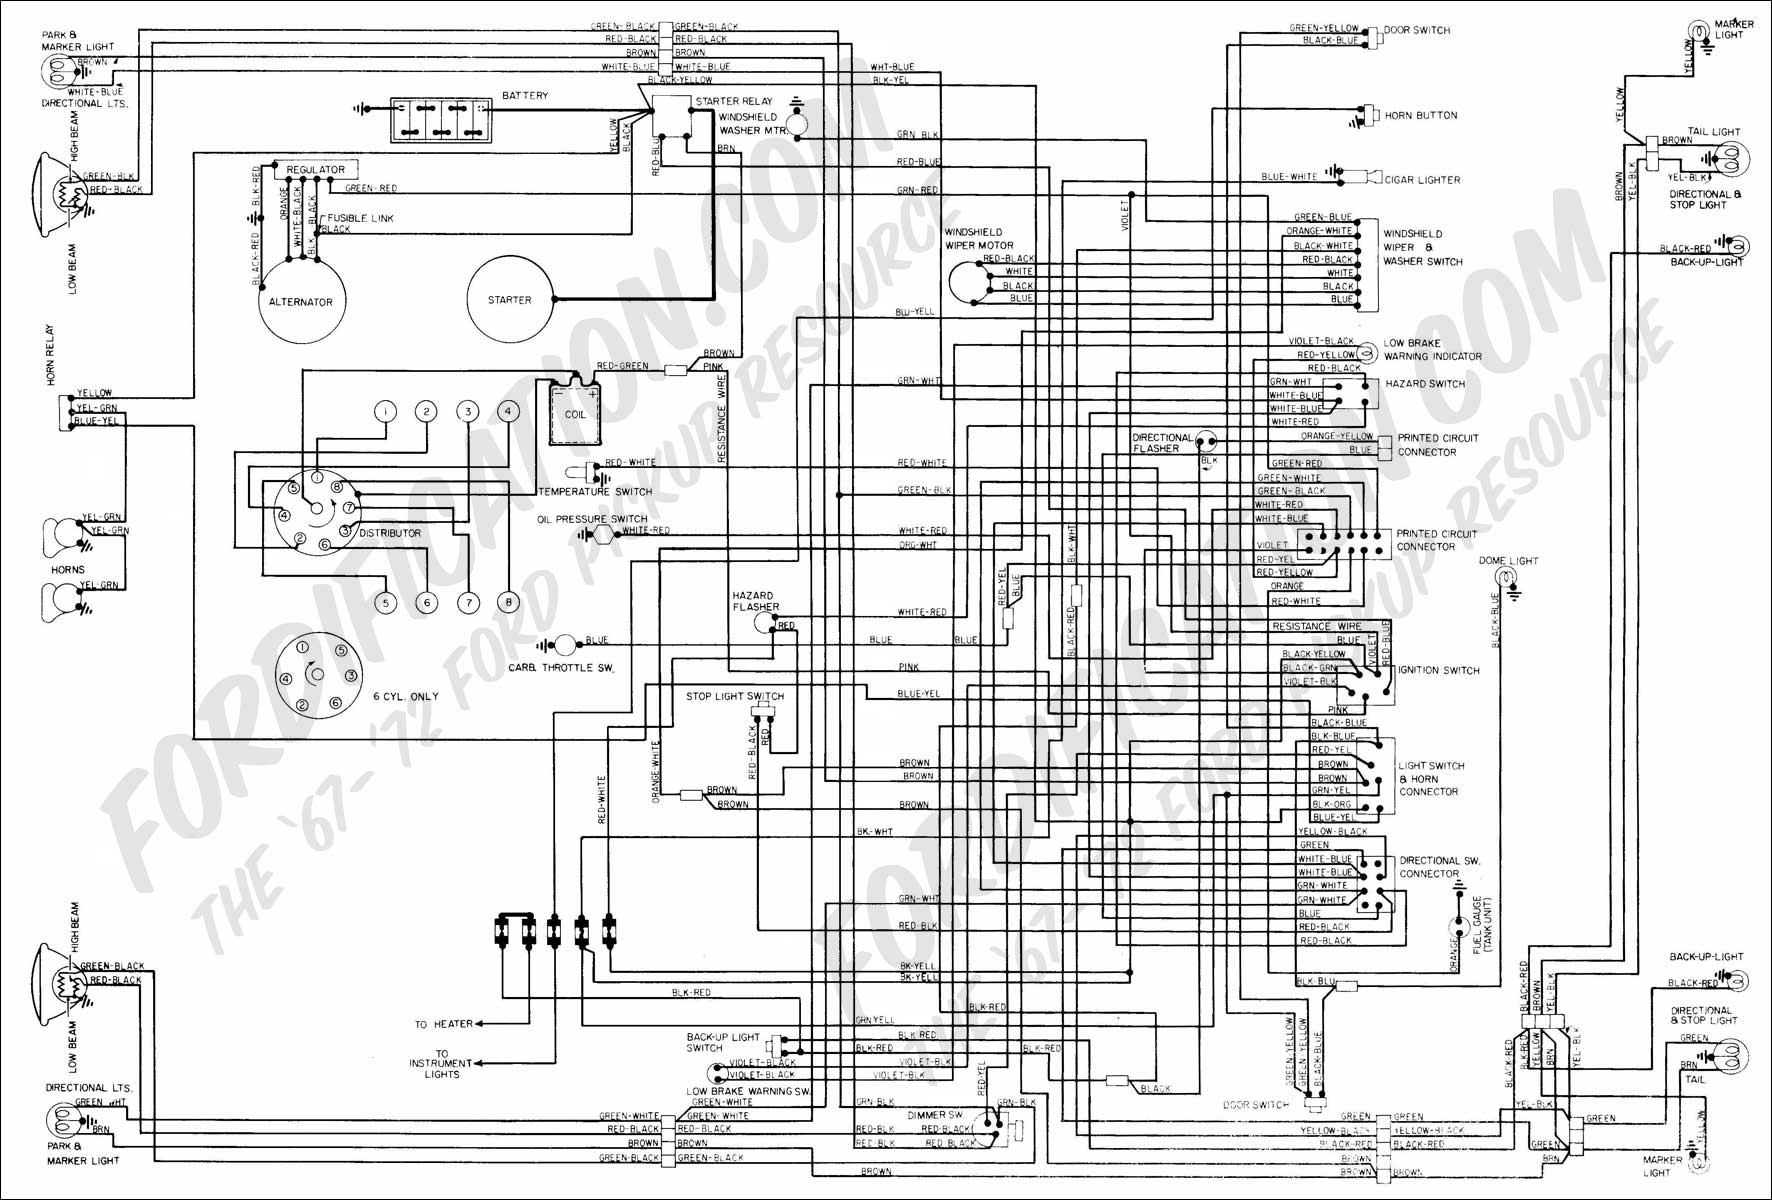 2005 ford e150 wiring diagram schematic schematics wiring diagram rh  sylviaexpress com 2005 ford f150 wiring diagram pdf 2005 ford f150 wiring  diagram